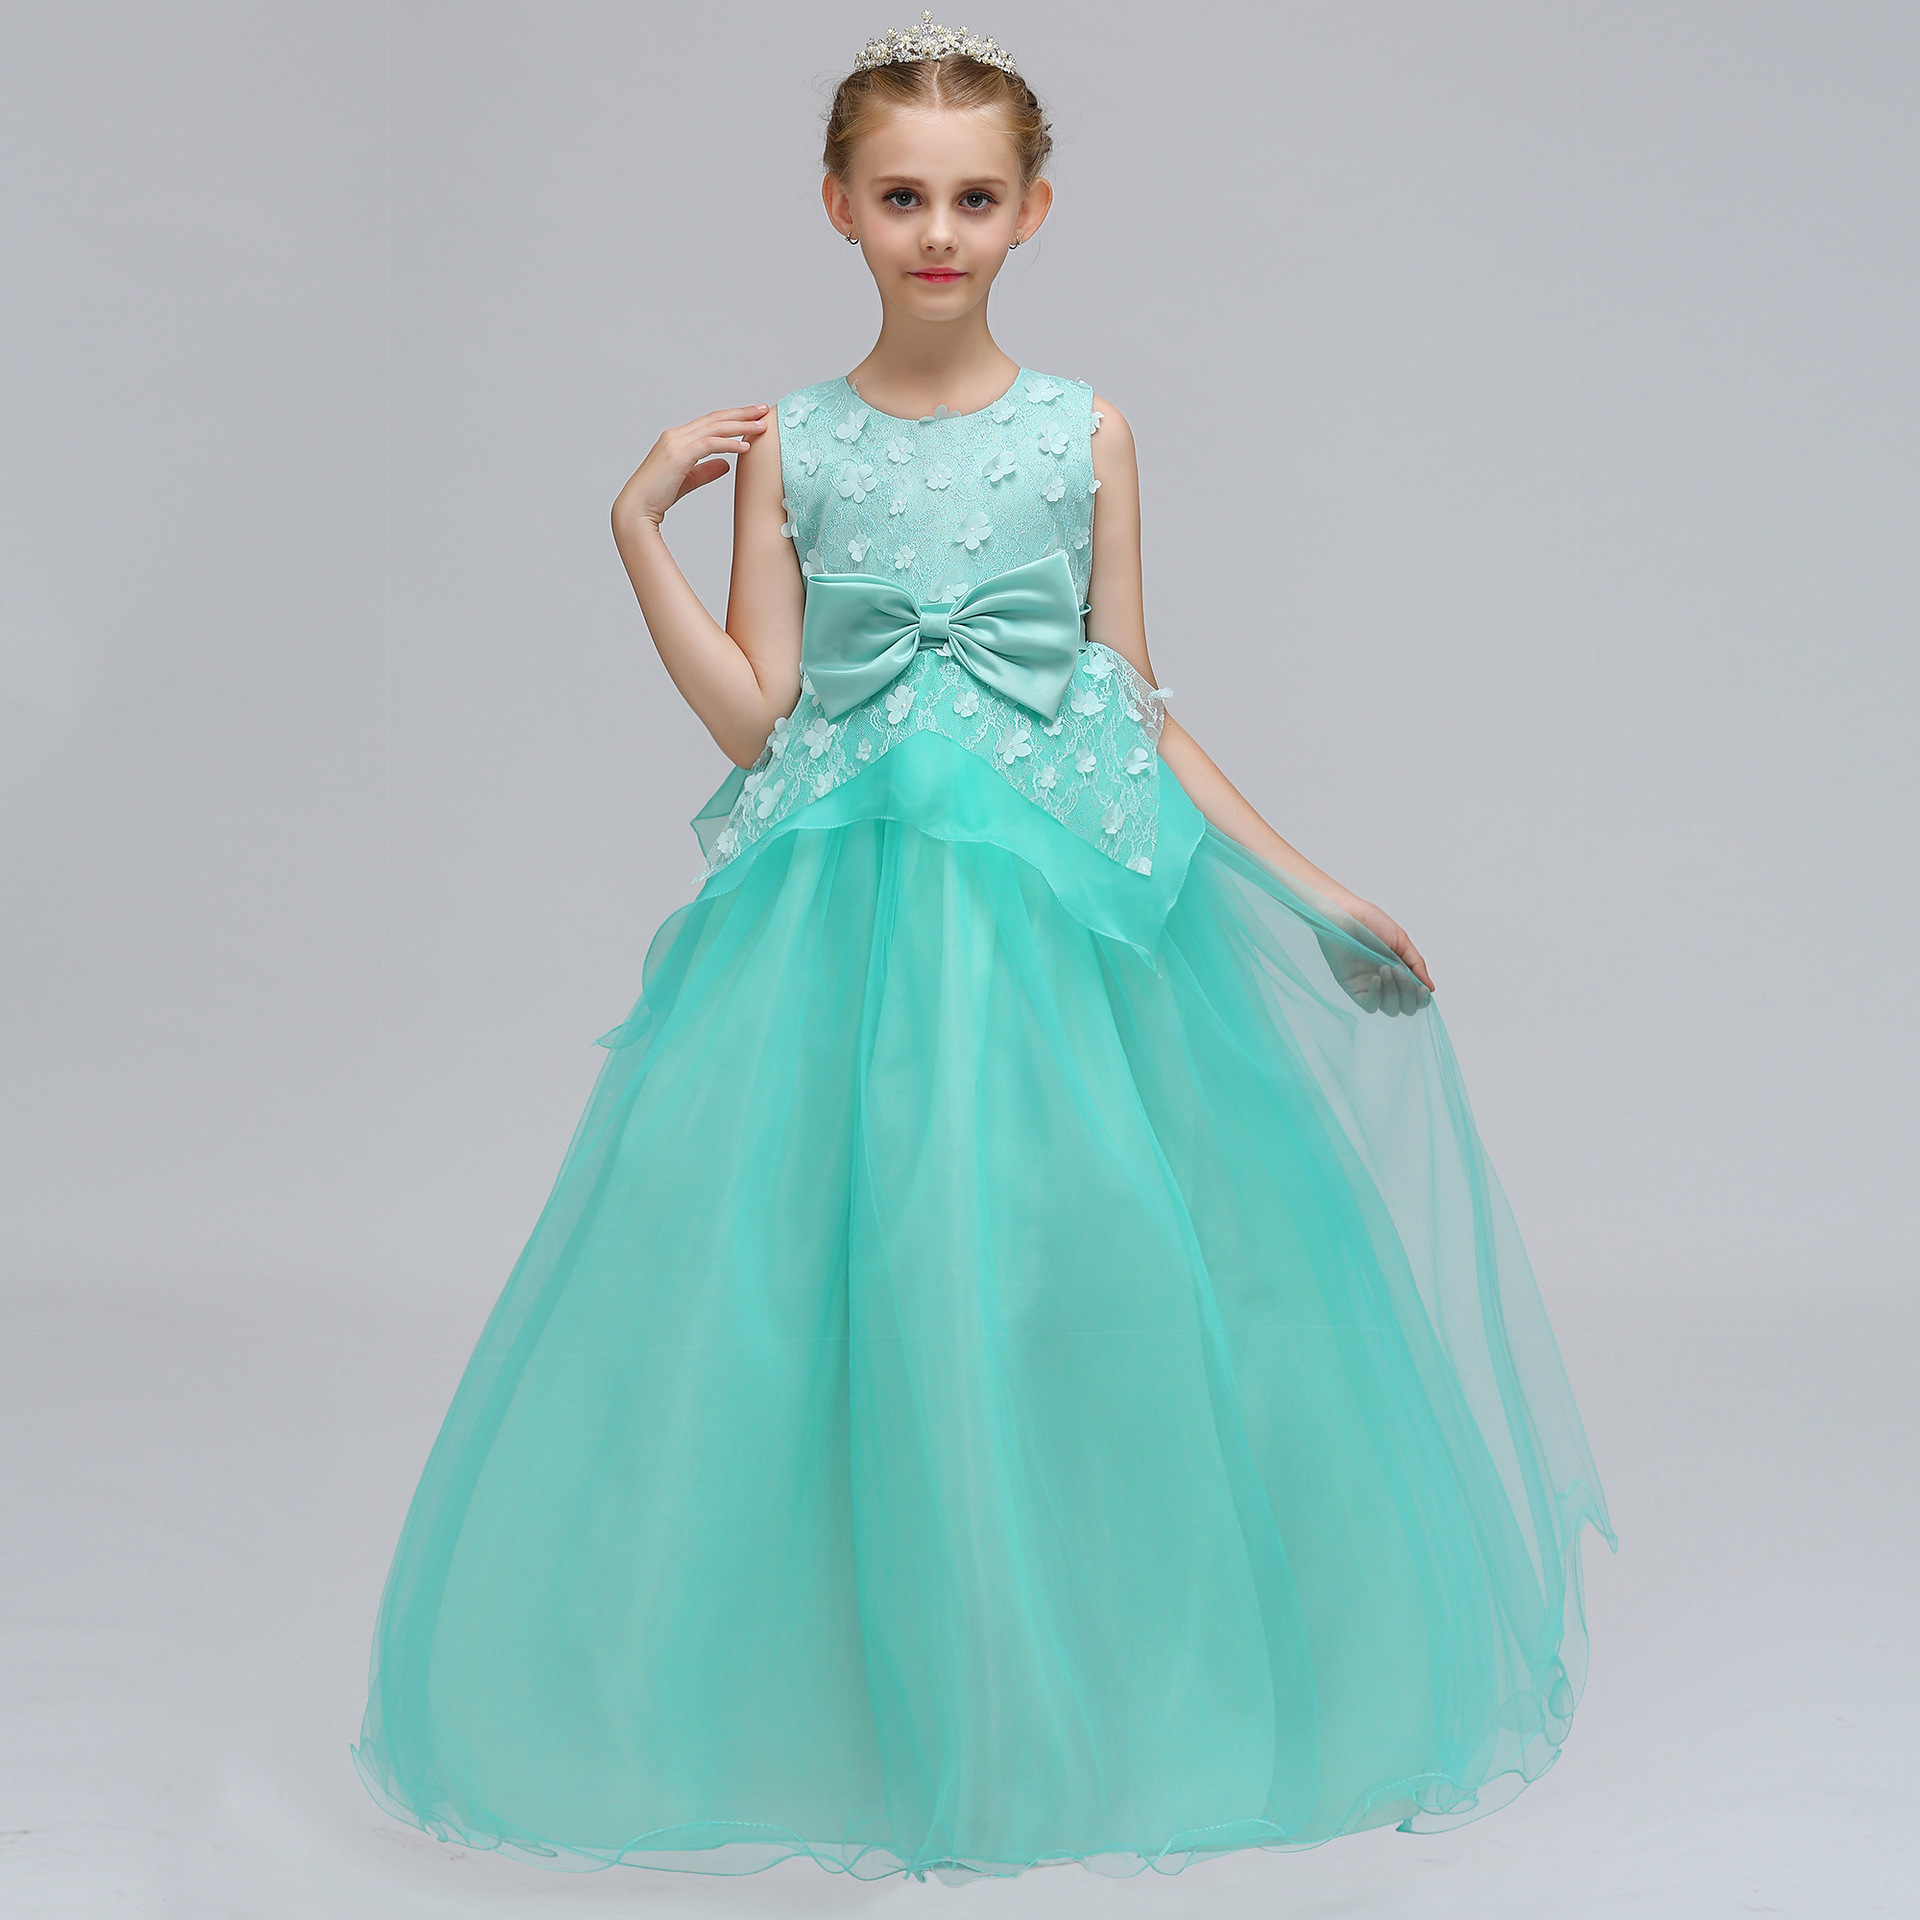 6354 Flowers Lace Embroidery Teen Girls Princess Party Wedding ...